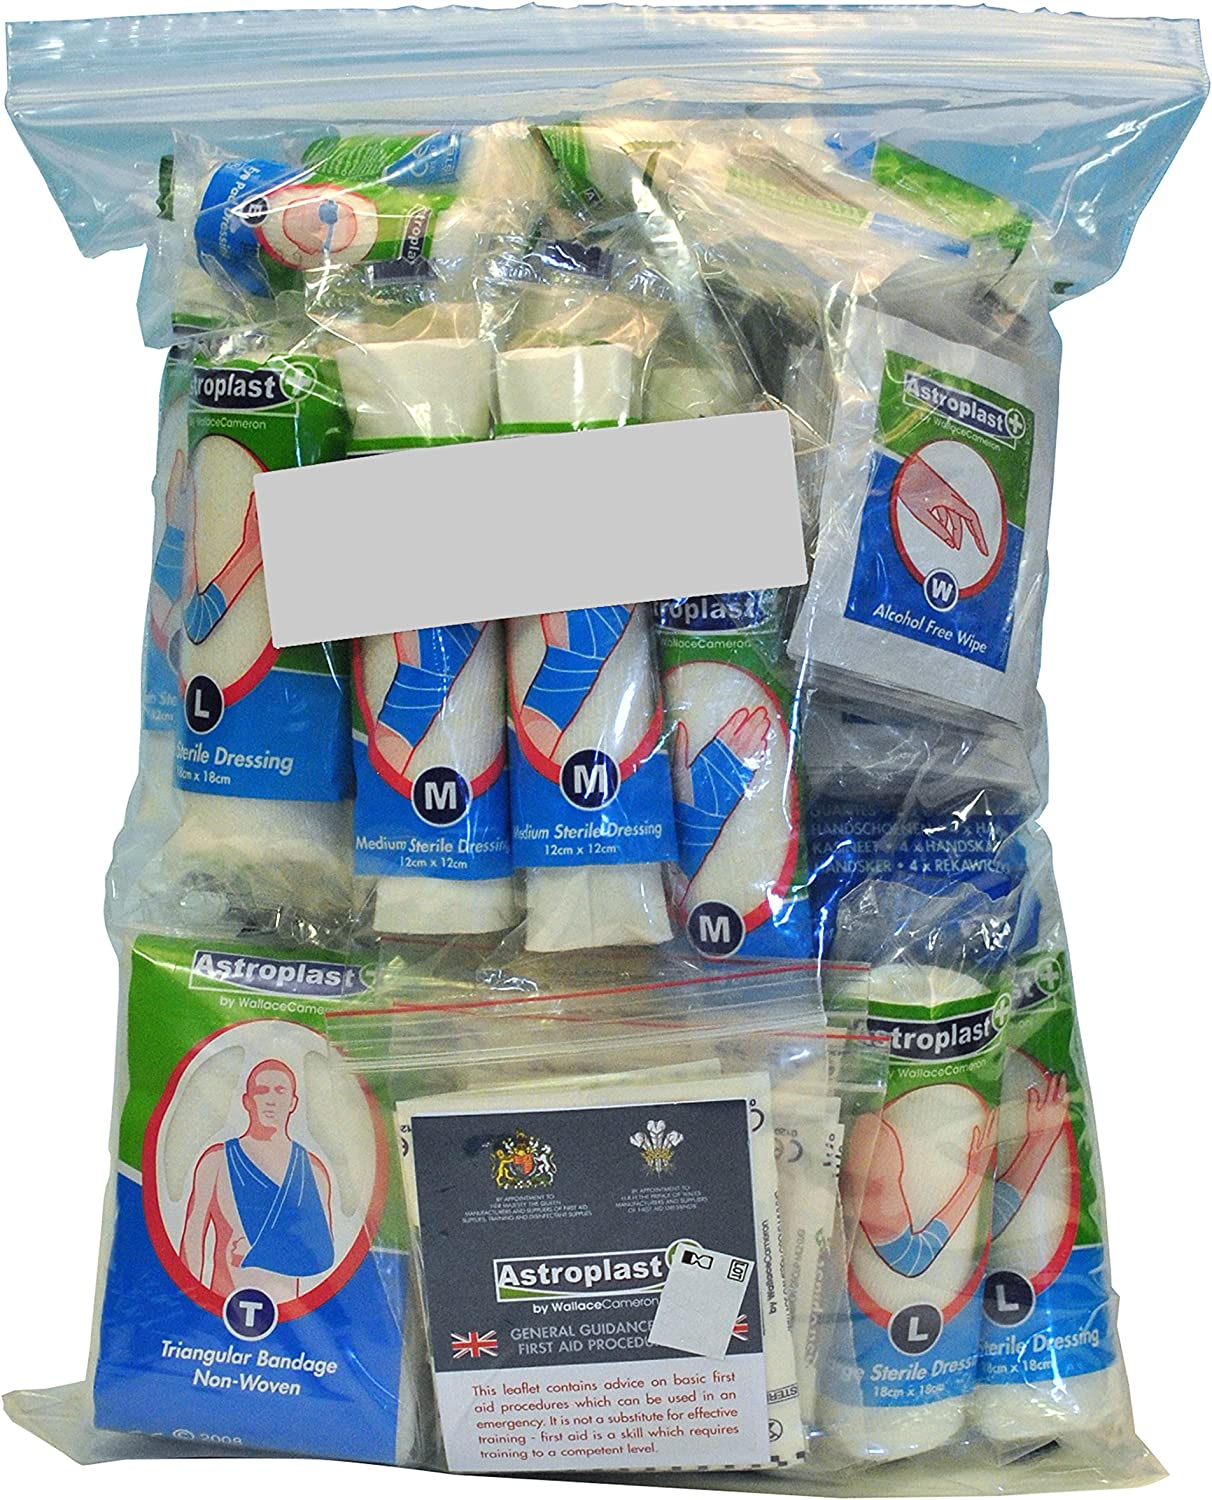 Wallace Cameron 50 Person Food Hygiene Kit Refill, 129 Count